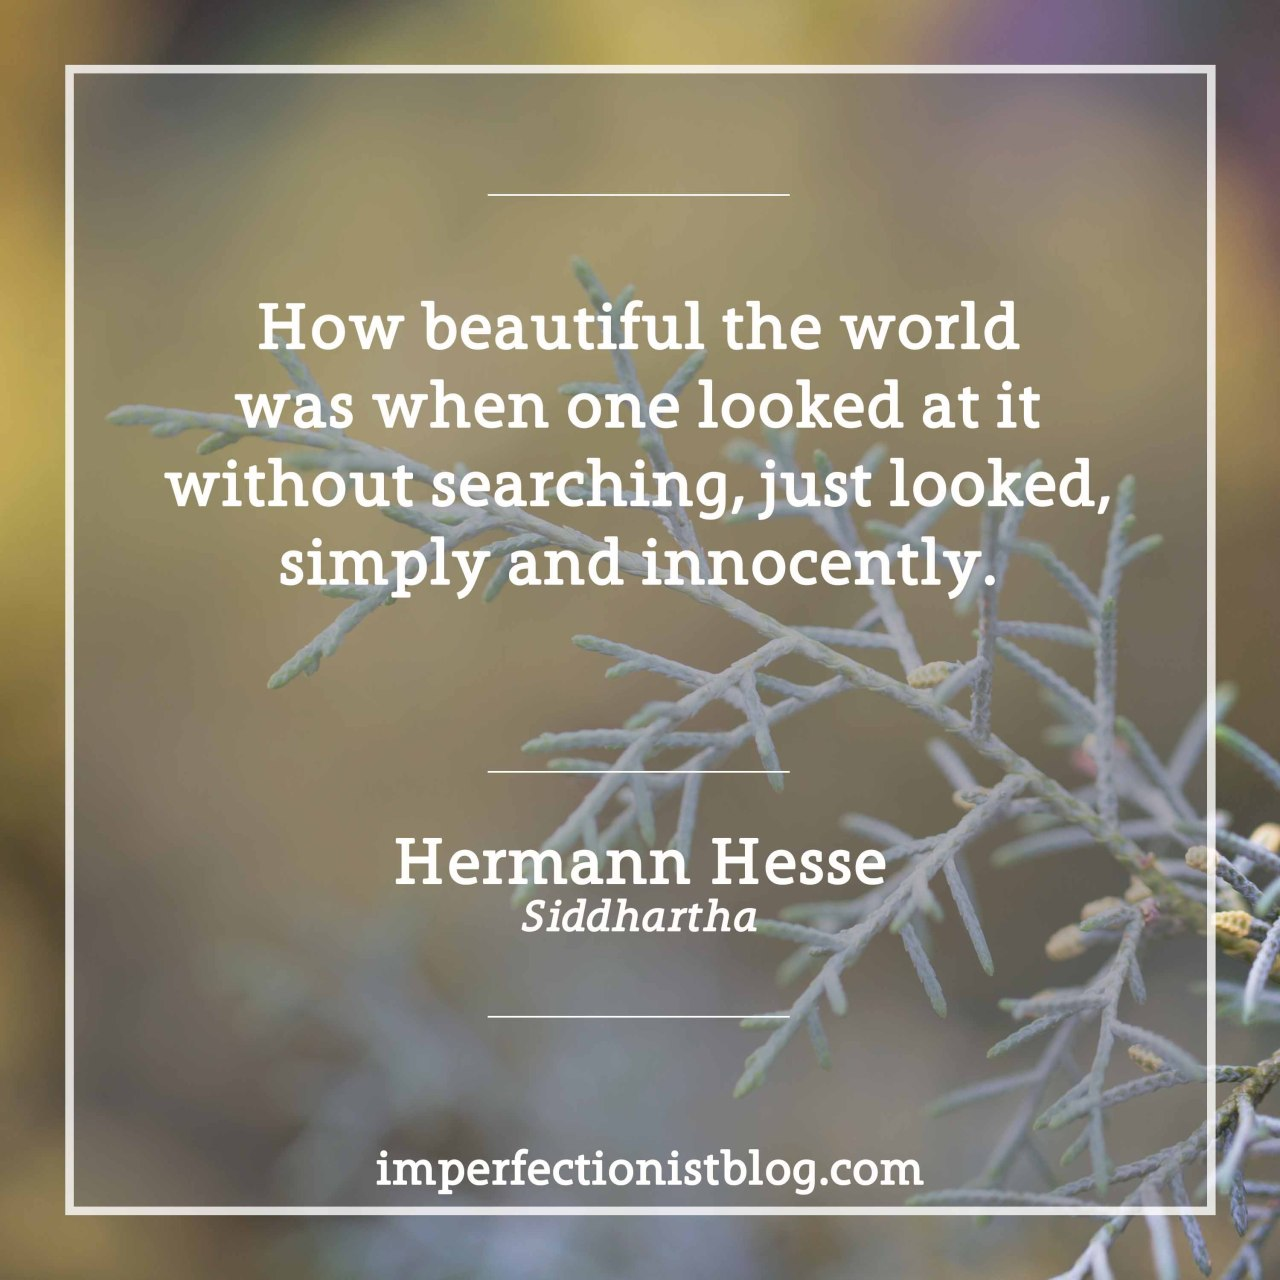 "imperfectionistbooks:#320 - ""How beautiful the world was when one looked at it without searching, just looked, simply and innocently."" -Hermann Hesse (Siddhartha)http://imperfectionistblog.com/book/siddhartha-by-hermann-hesse/"